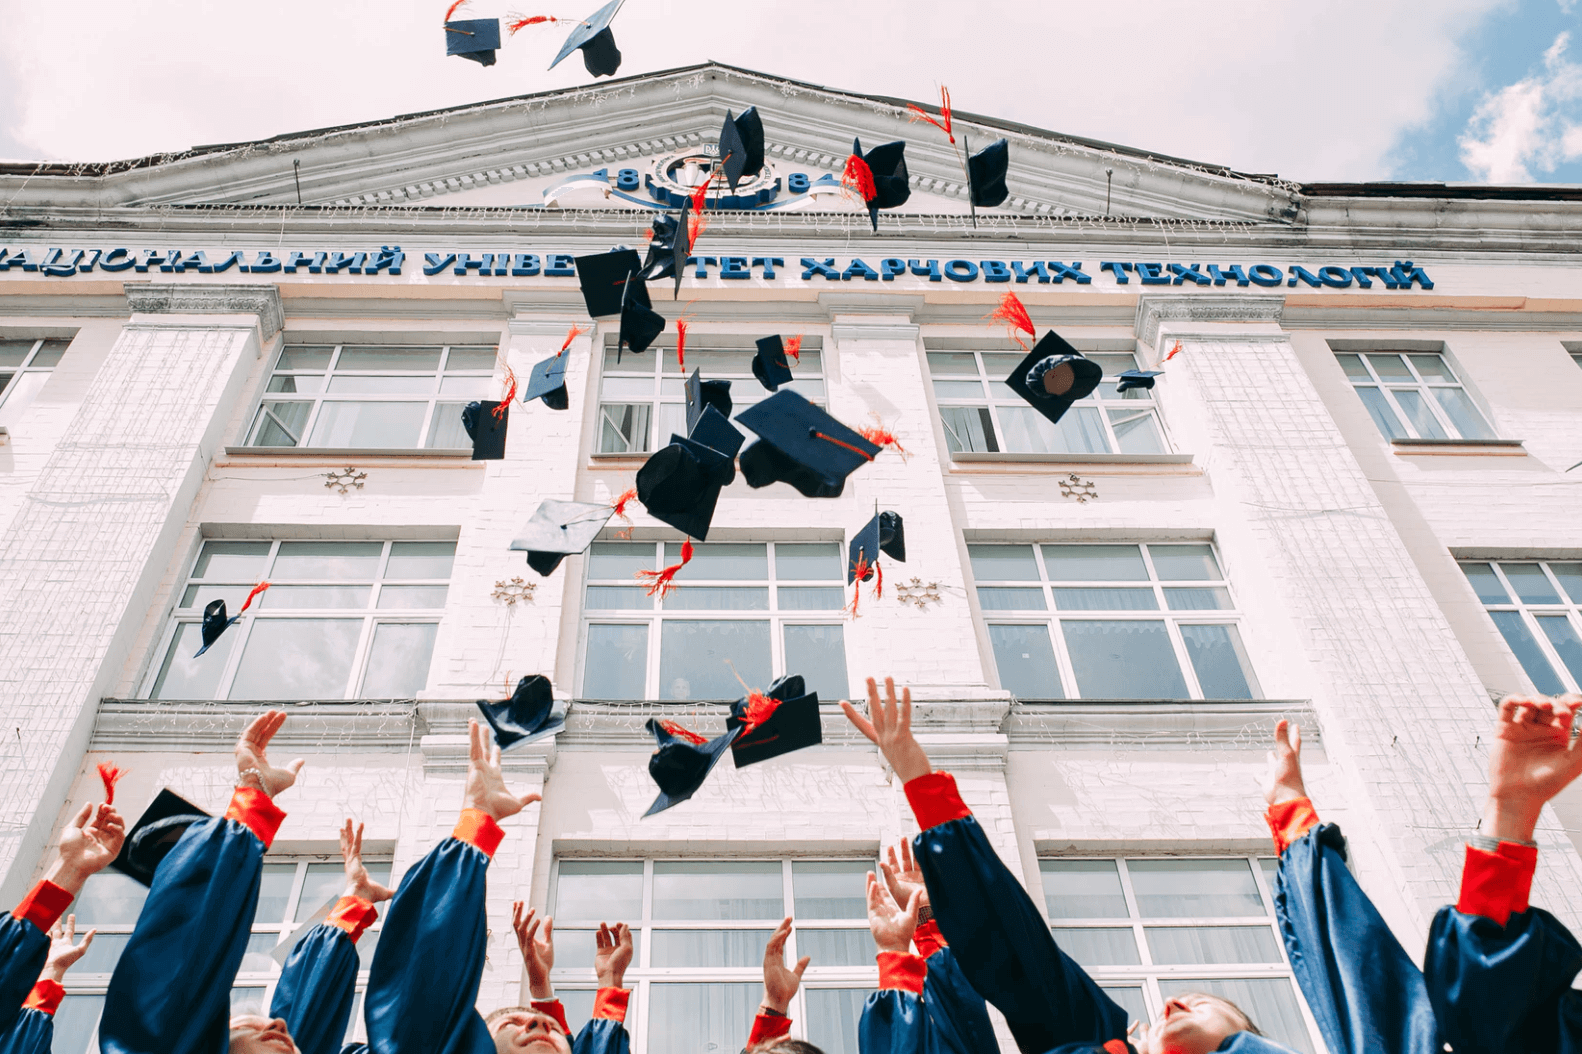 Students throwing their hats in the air on the their graduation day.